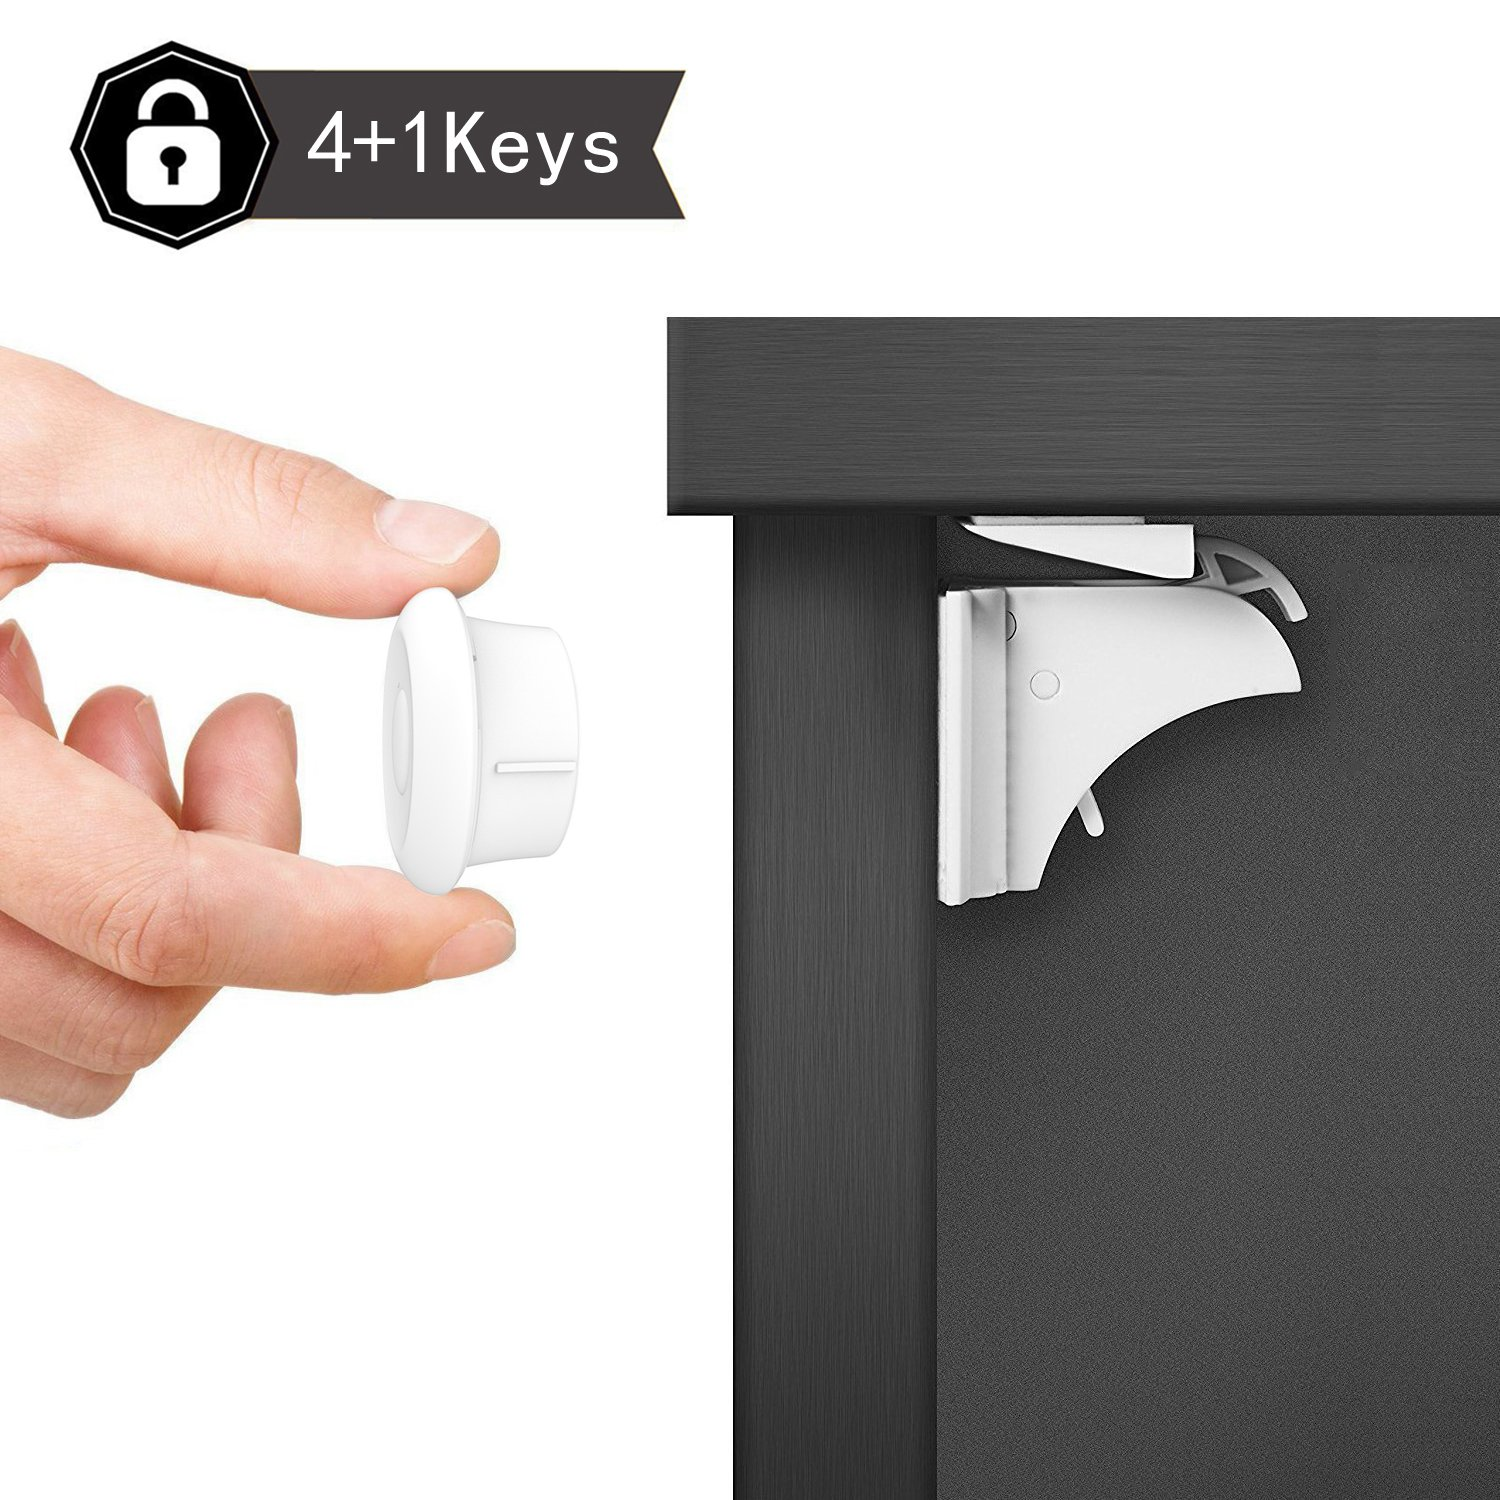 Dokon Child Safety Magnetic Cupboard Locks (10 Locks + 2 Keys), No Tools Or Screws Needed, Baby Safety Locks for Cabinets and Drawers